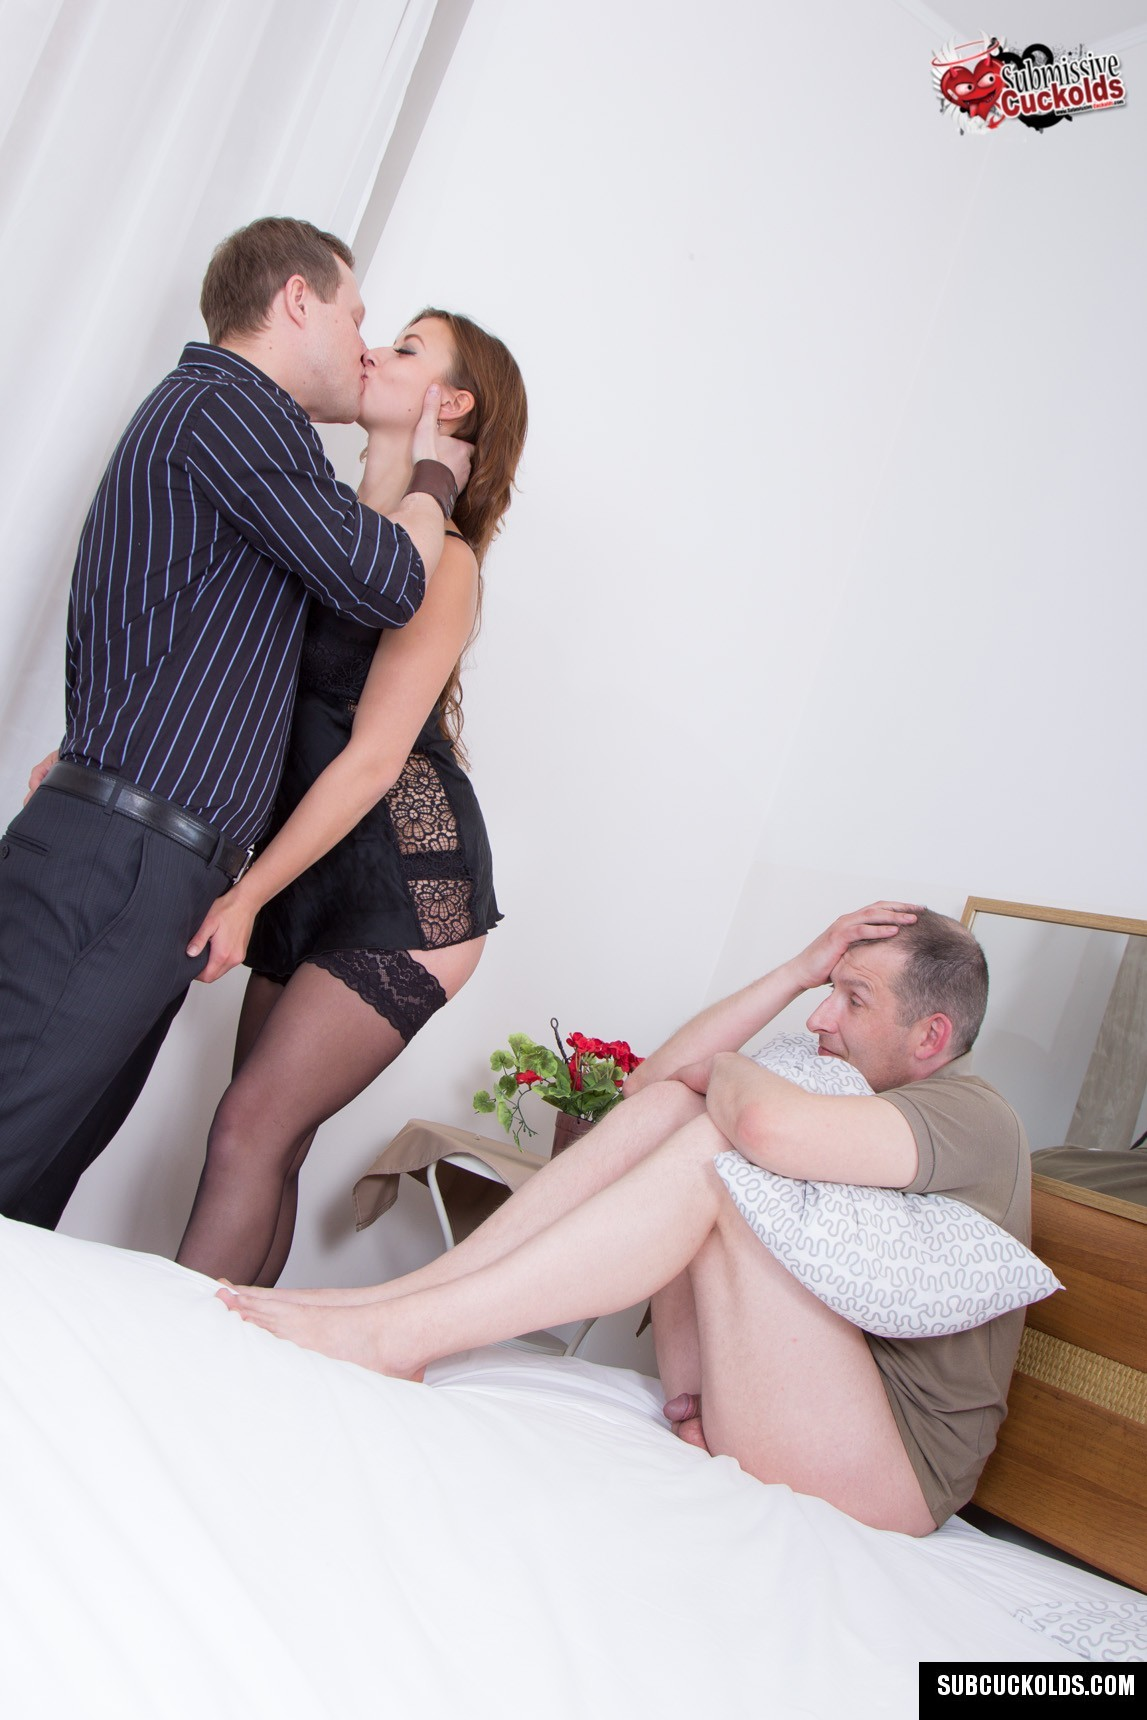 A young cuckold relationship part 3 - 2 part 1